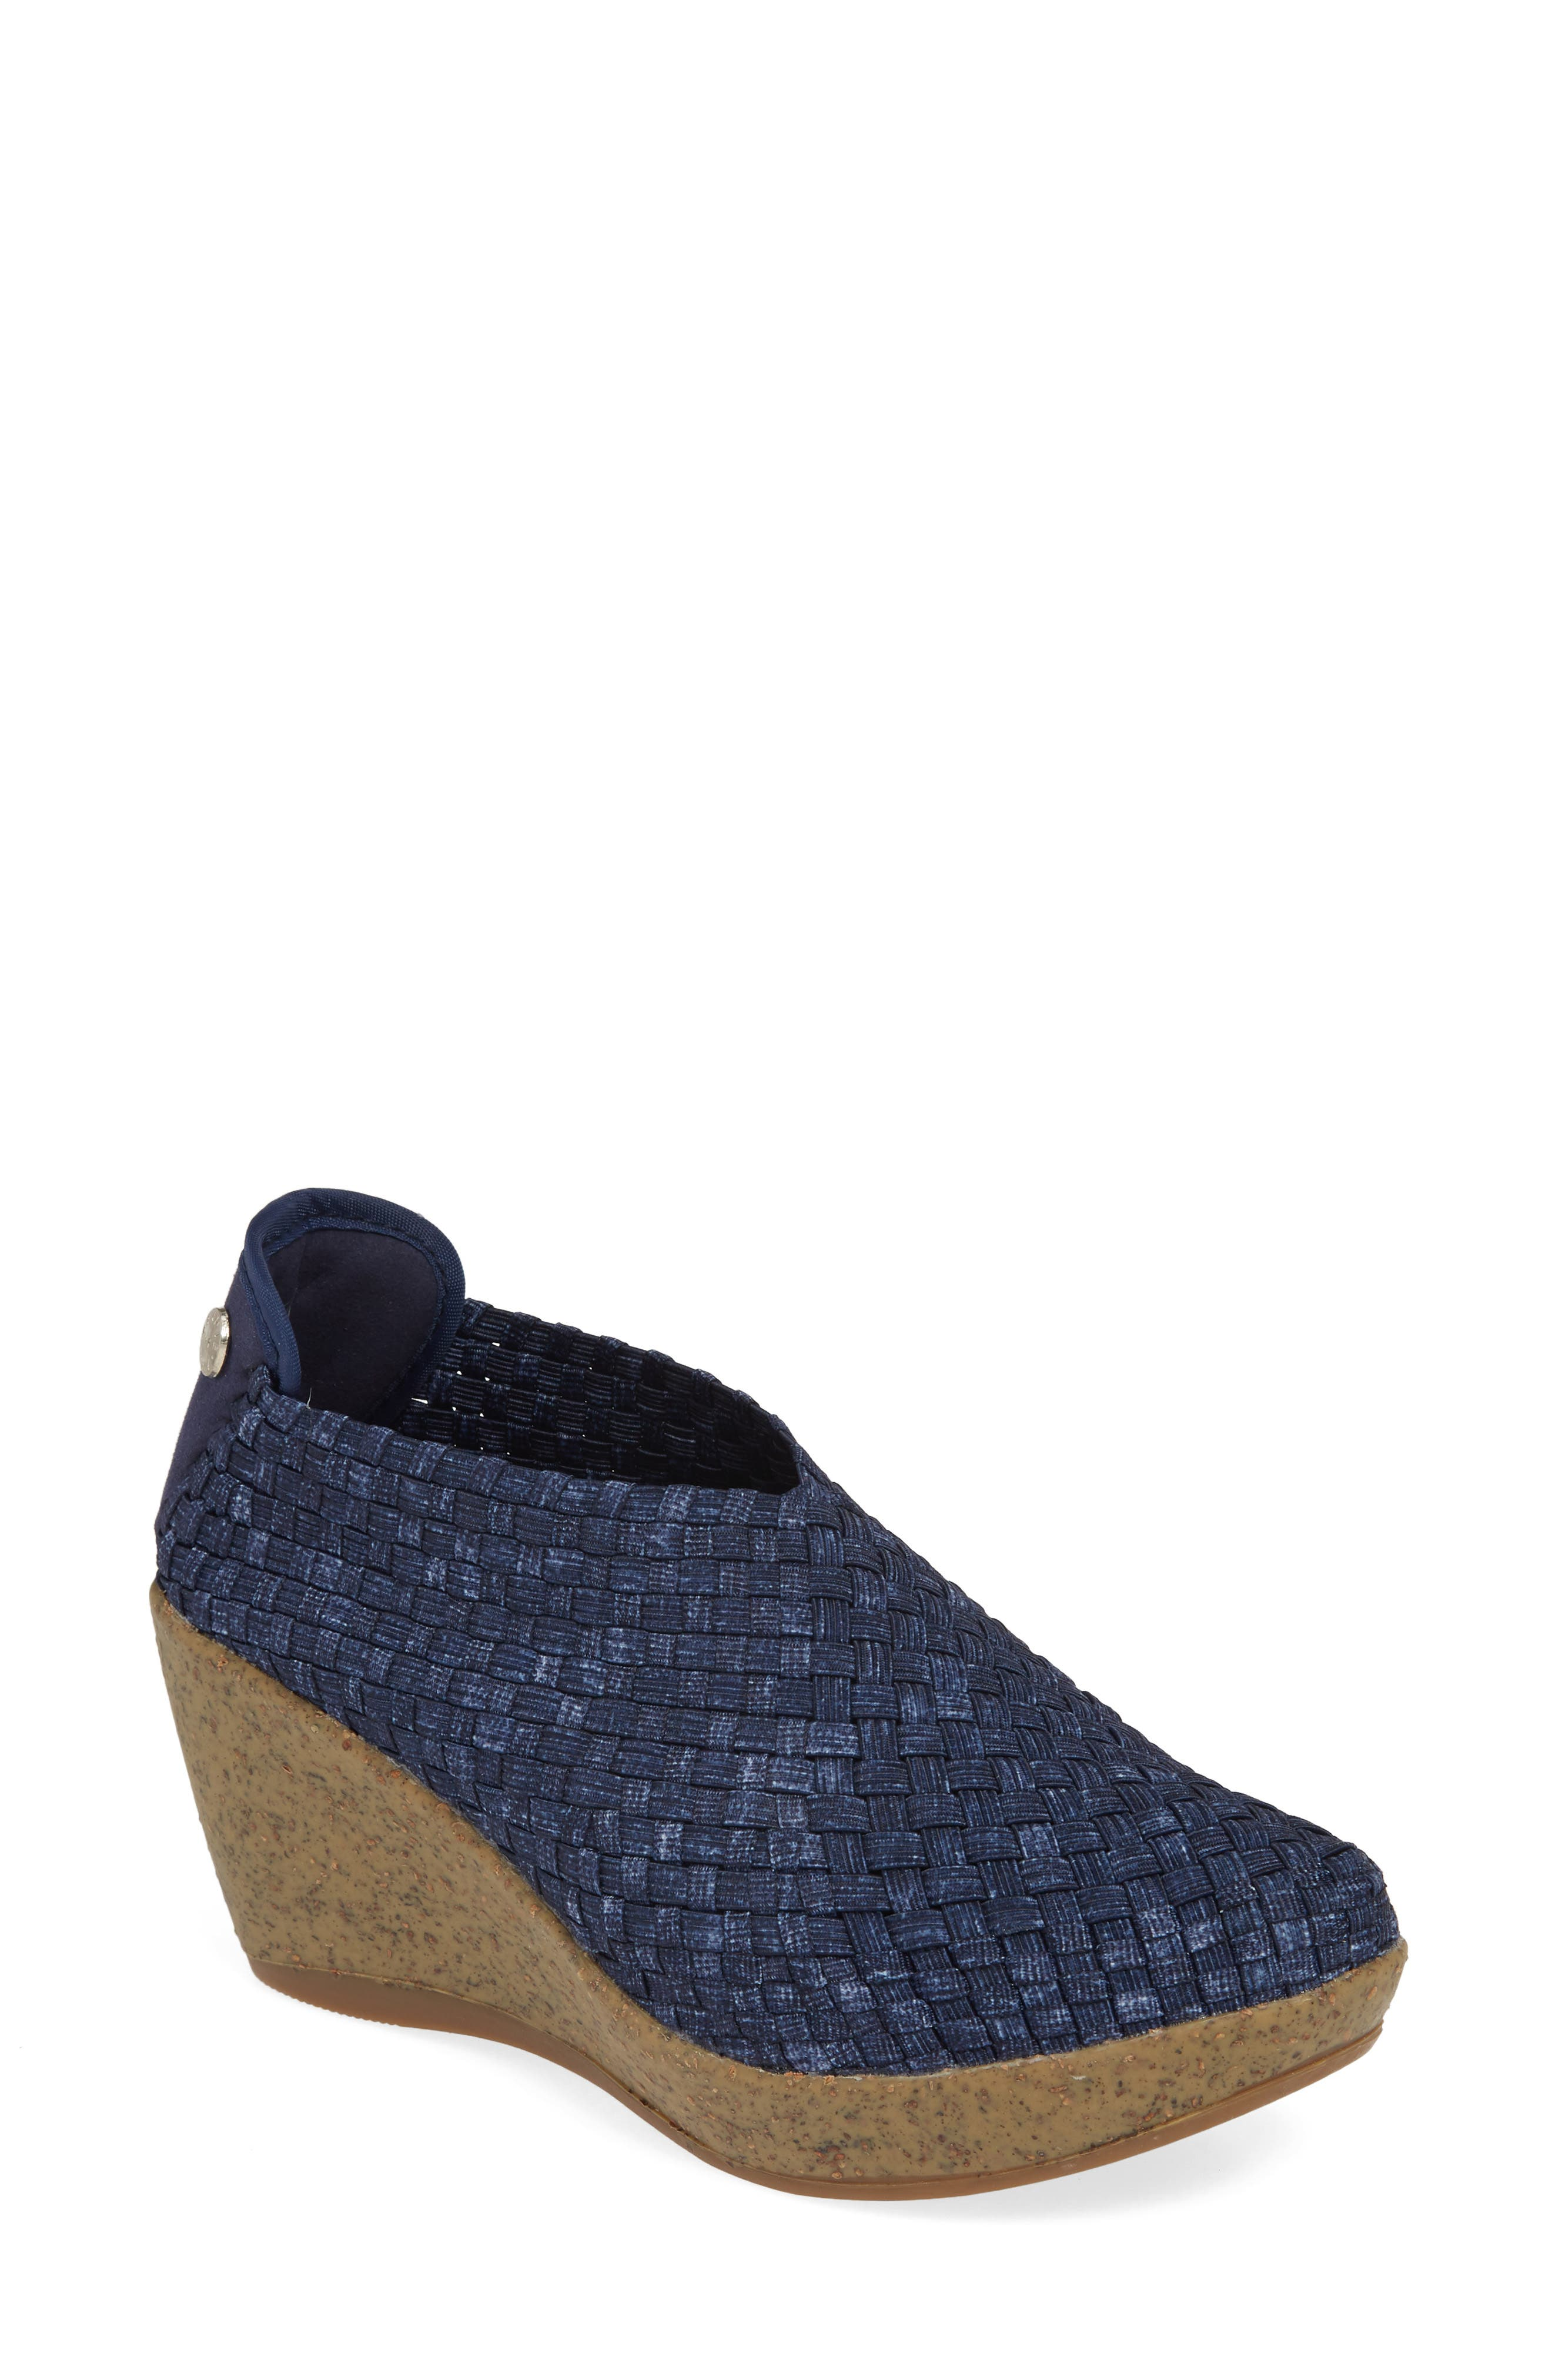 Basket-weave elastic perfects the custom, comfy fit of a lightweight, rubber-cork wedge. Style Name: Bernie Mev. Woven Wedge. Style Number: 993170. Available in stores.